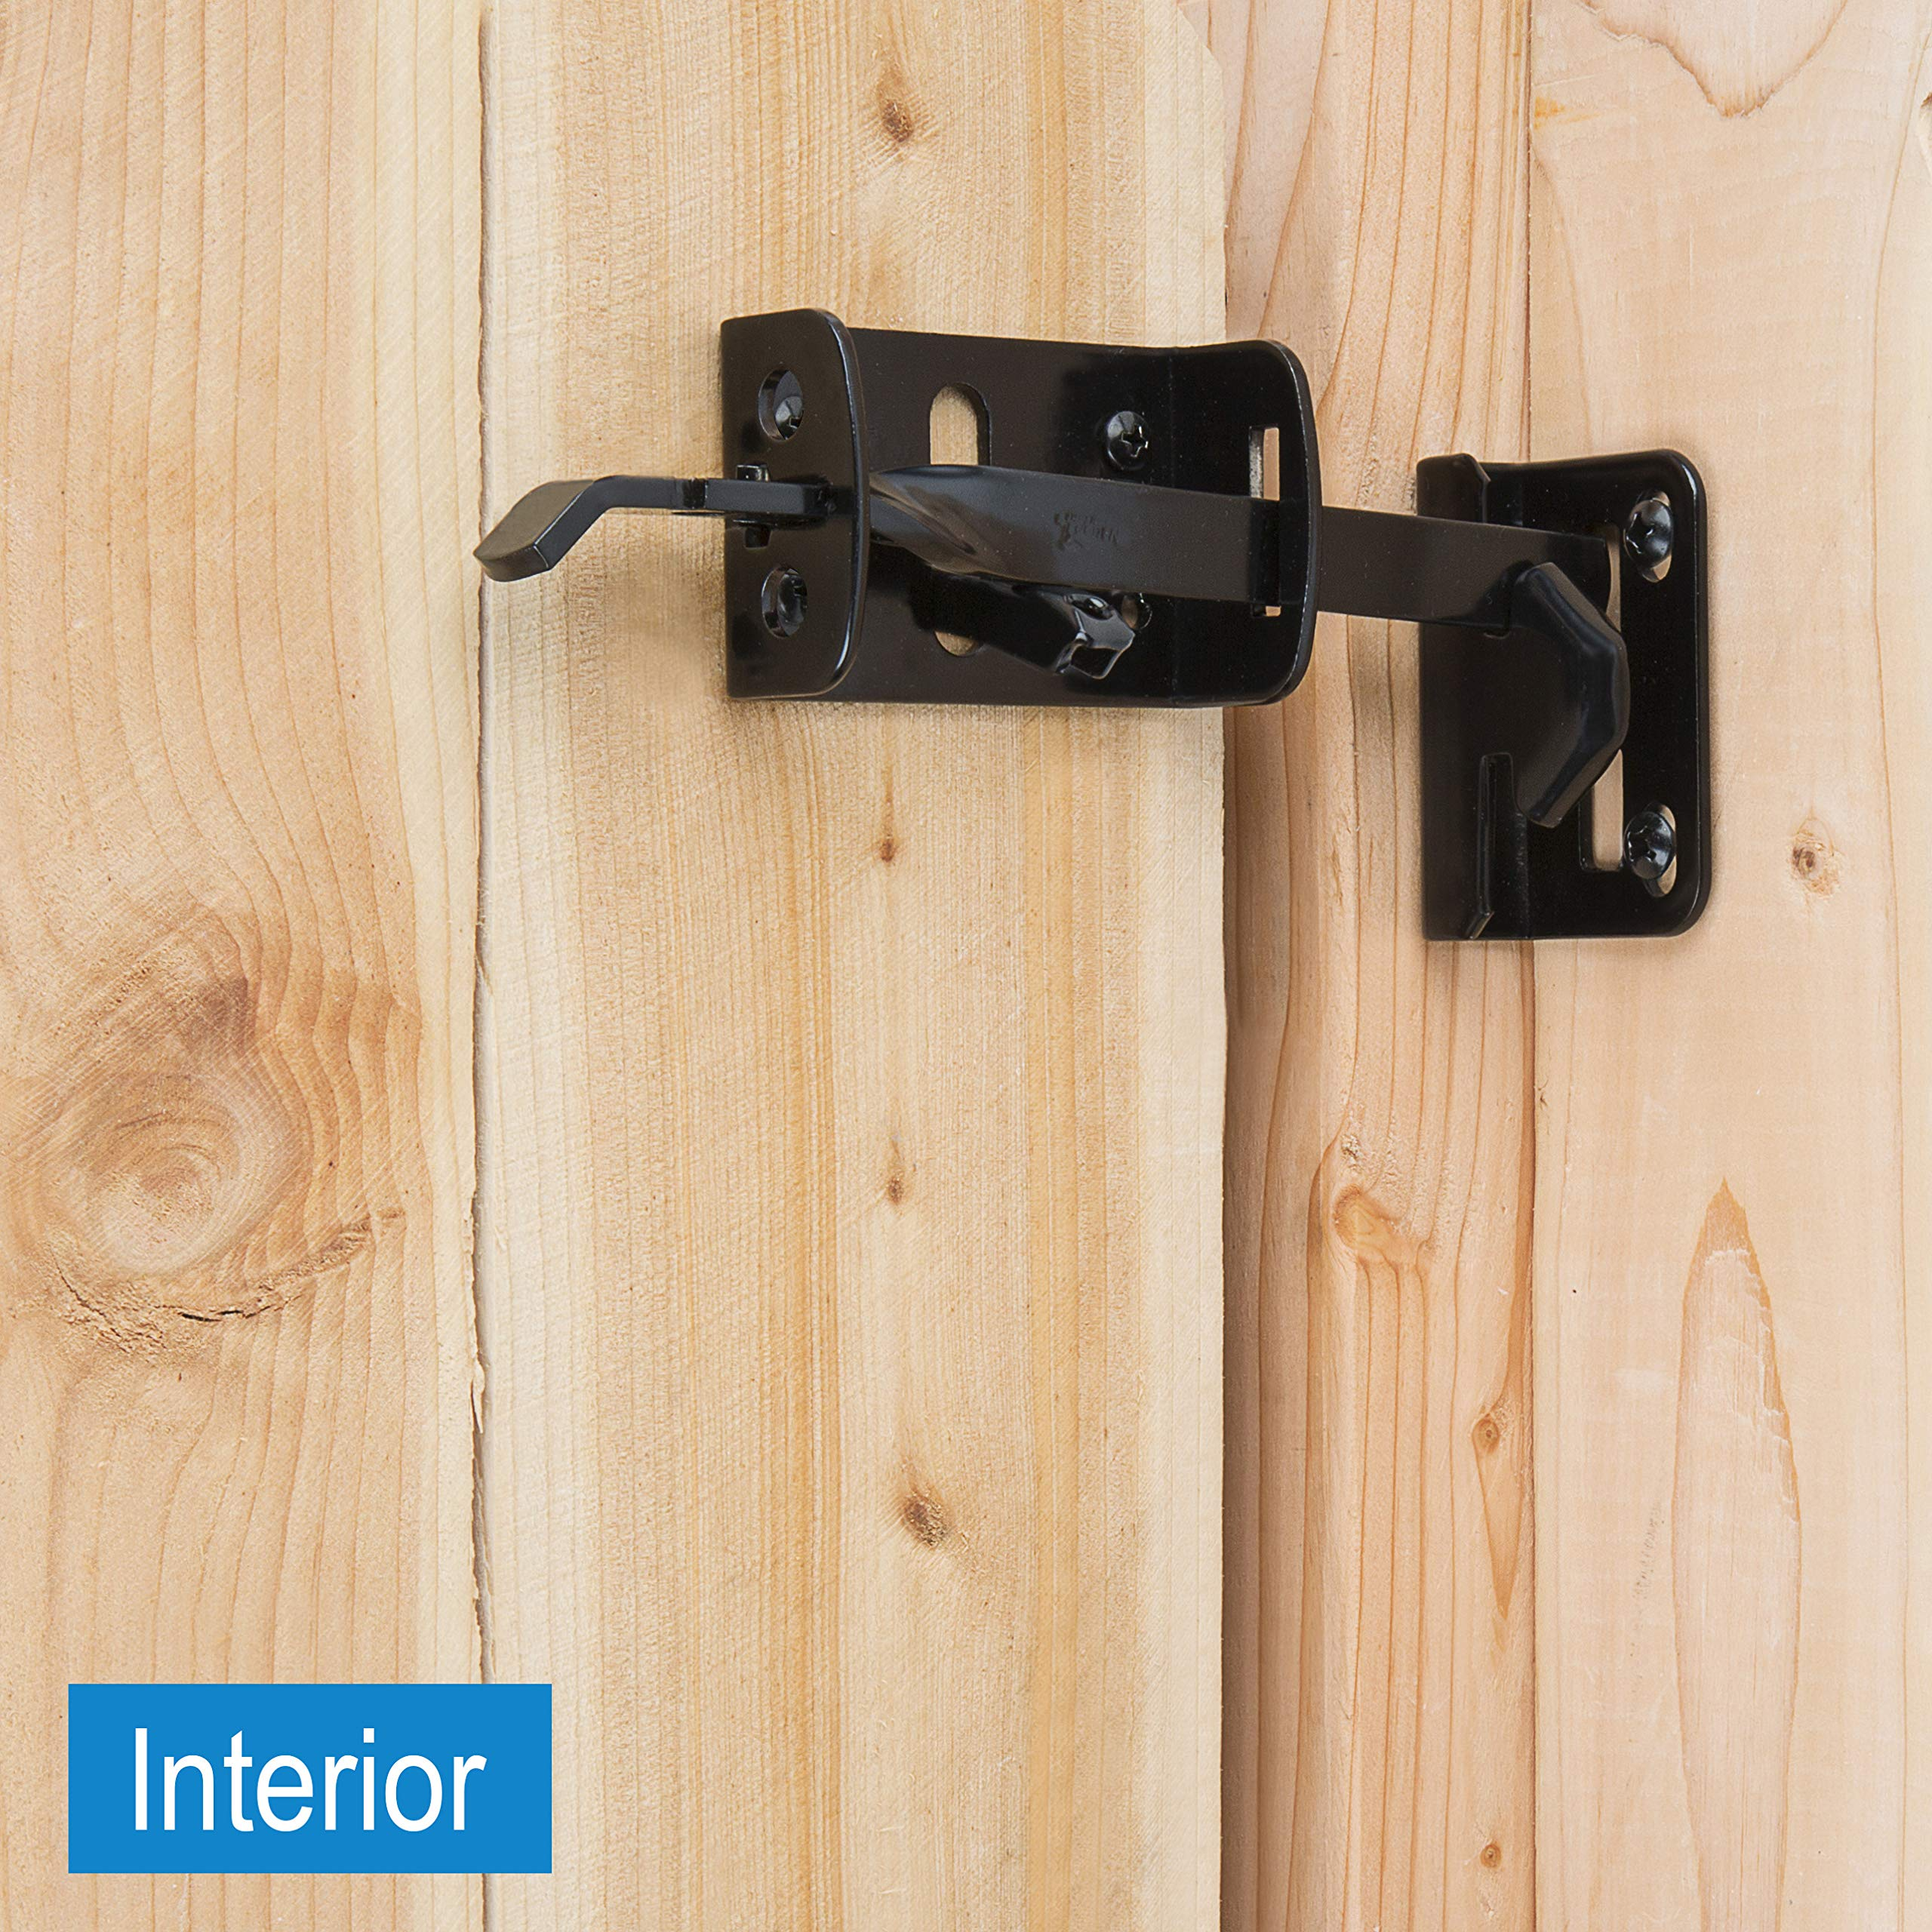 Gate Thumb Latch N109-050 by National Hardware in Black by National Hardware (Image #3)